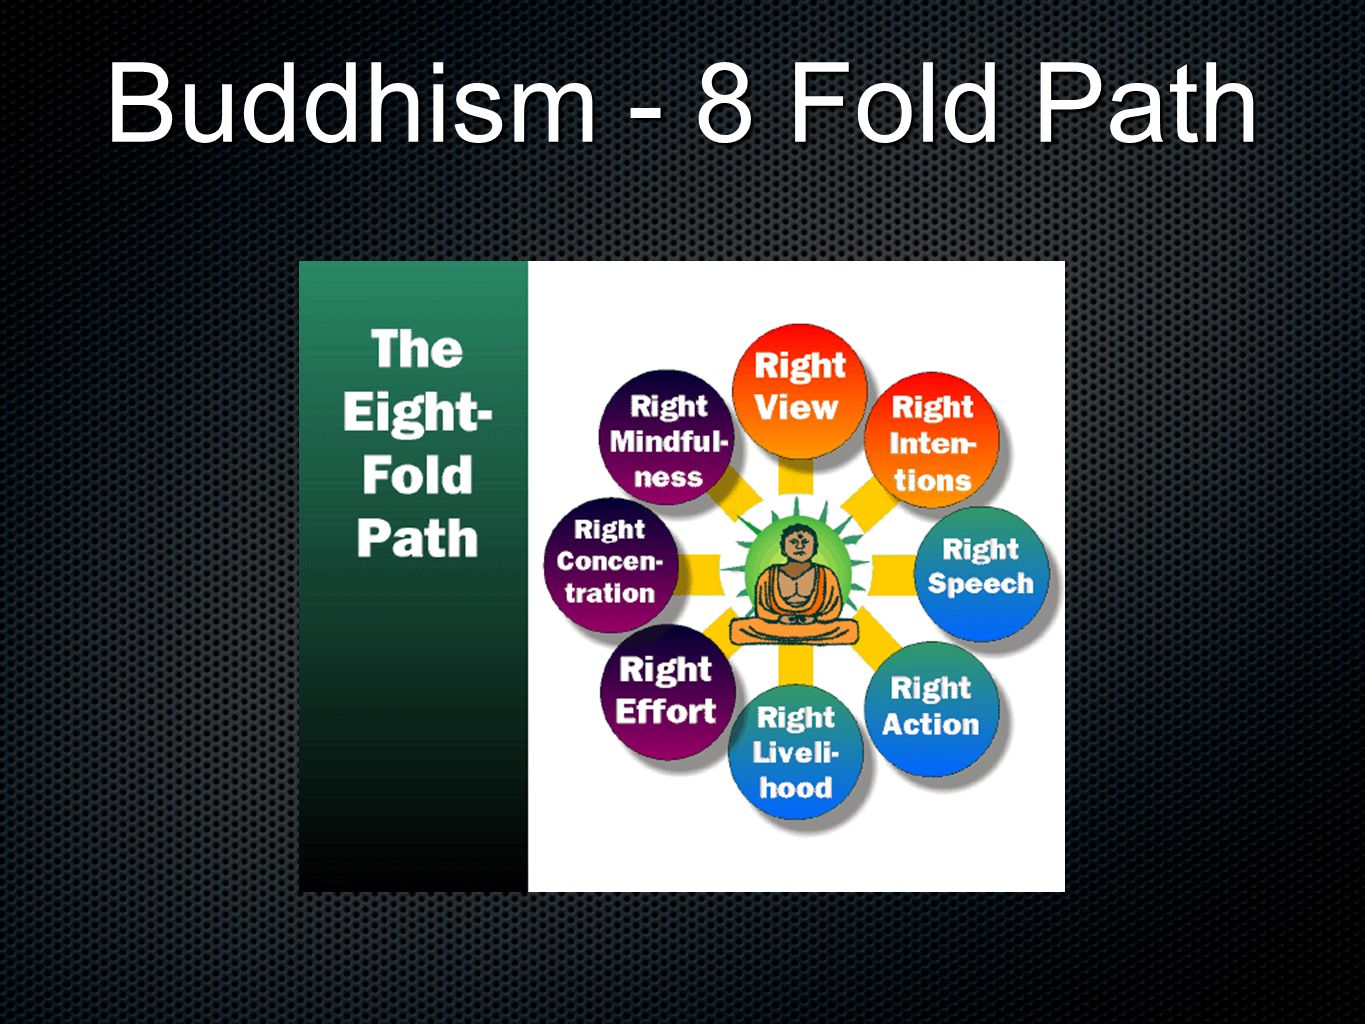 Buddhism - 8 Fold Path